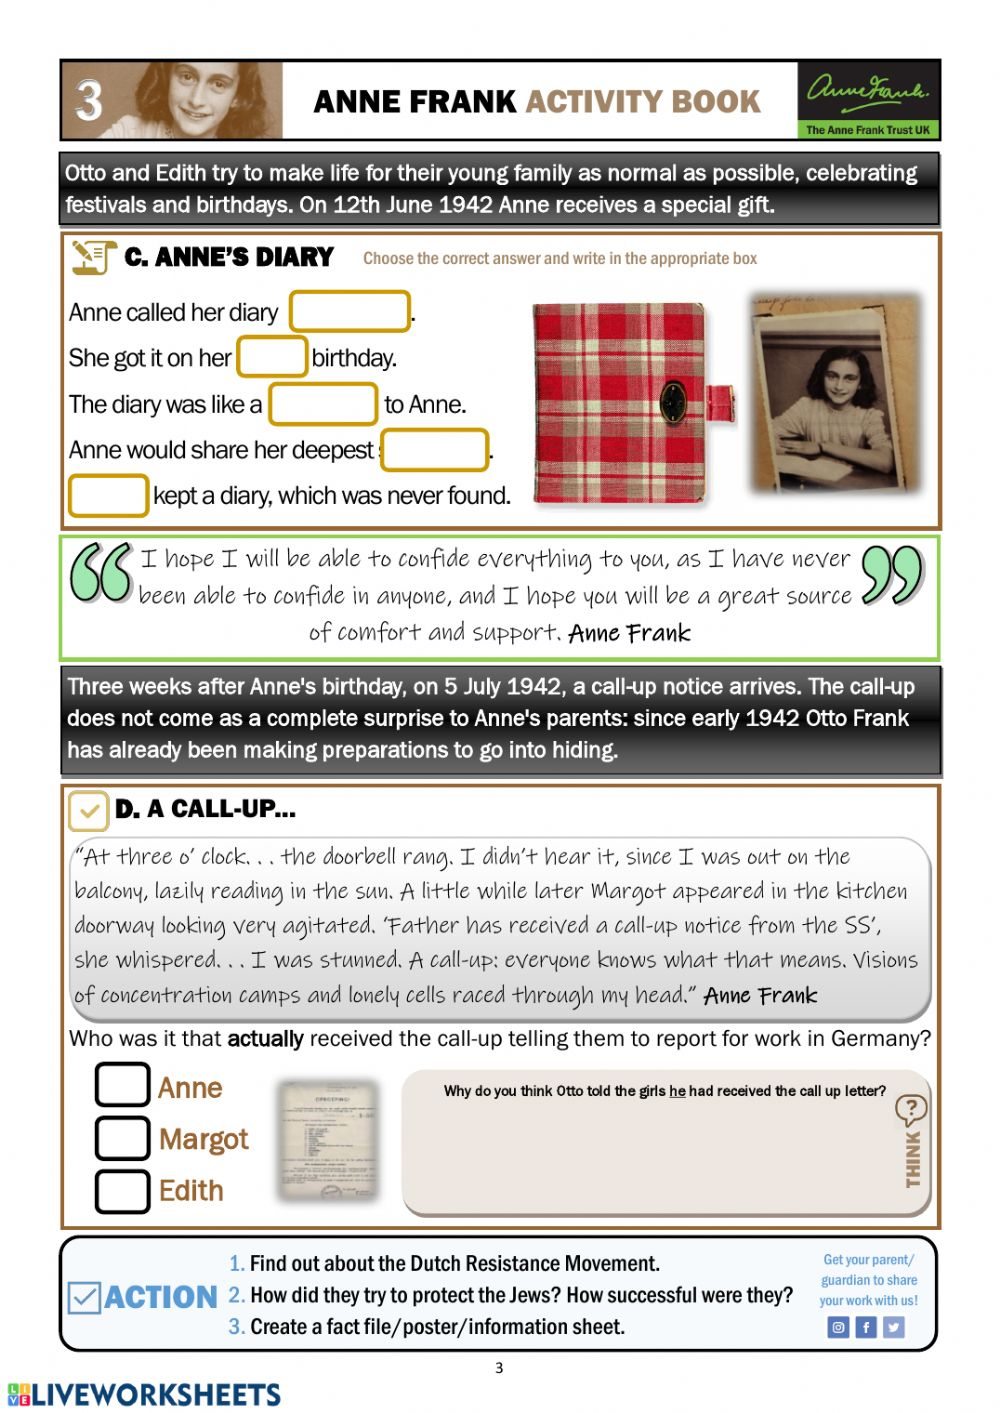 Anne Frank - Activity Book Section 3 worksheet